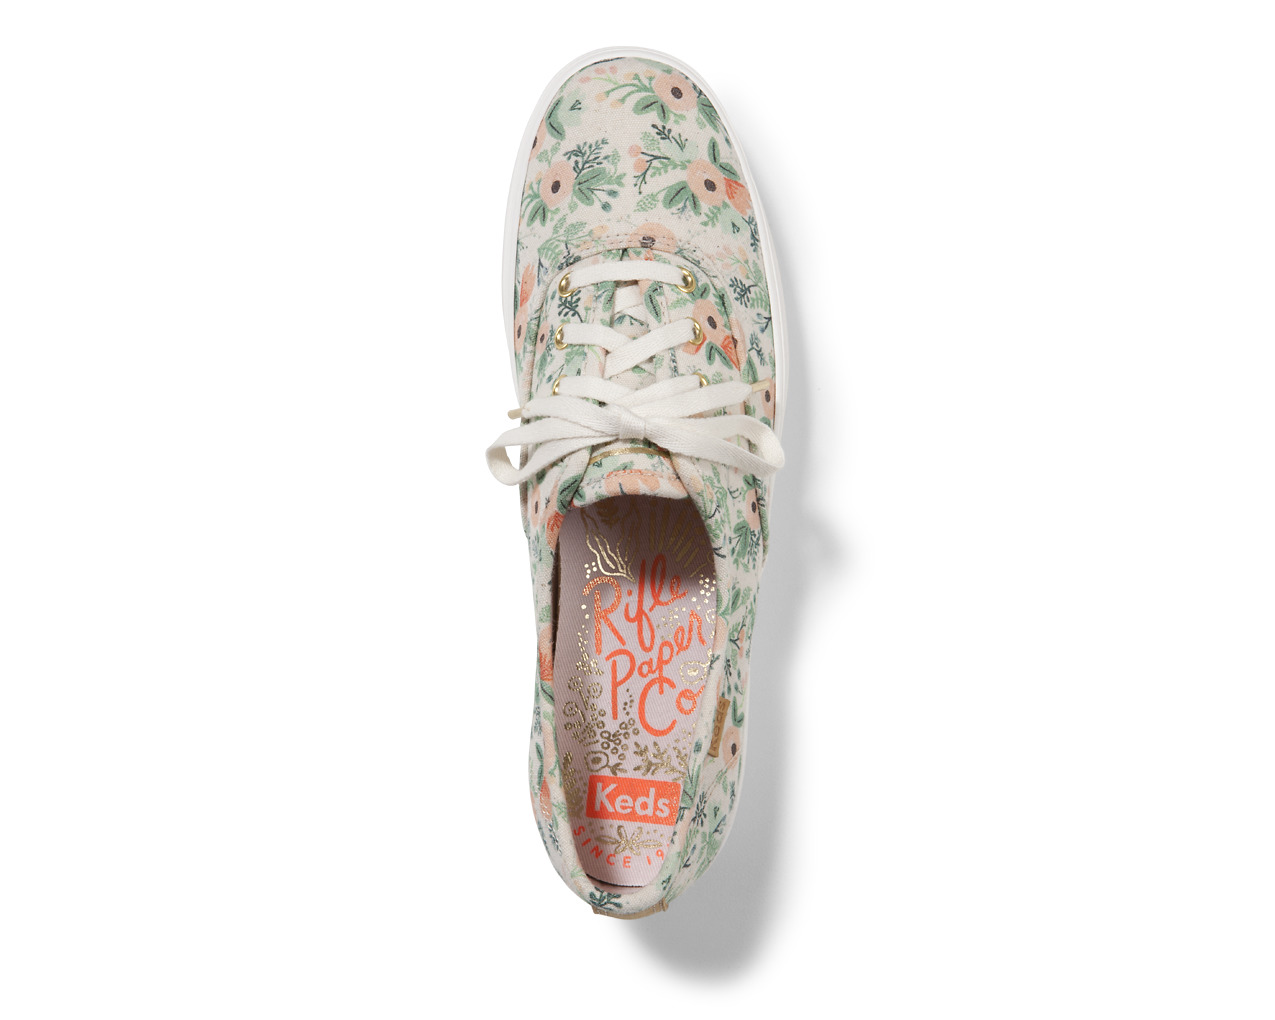 21cb1c47cd4d THE KEDS x RIFLE PAPER CO. COLLECTION - MASSES